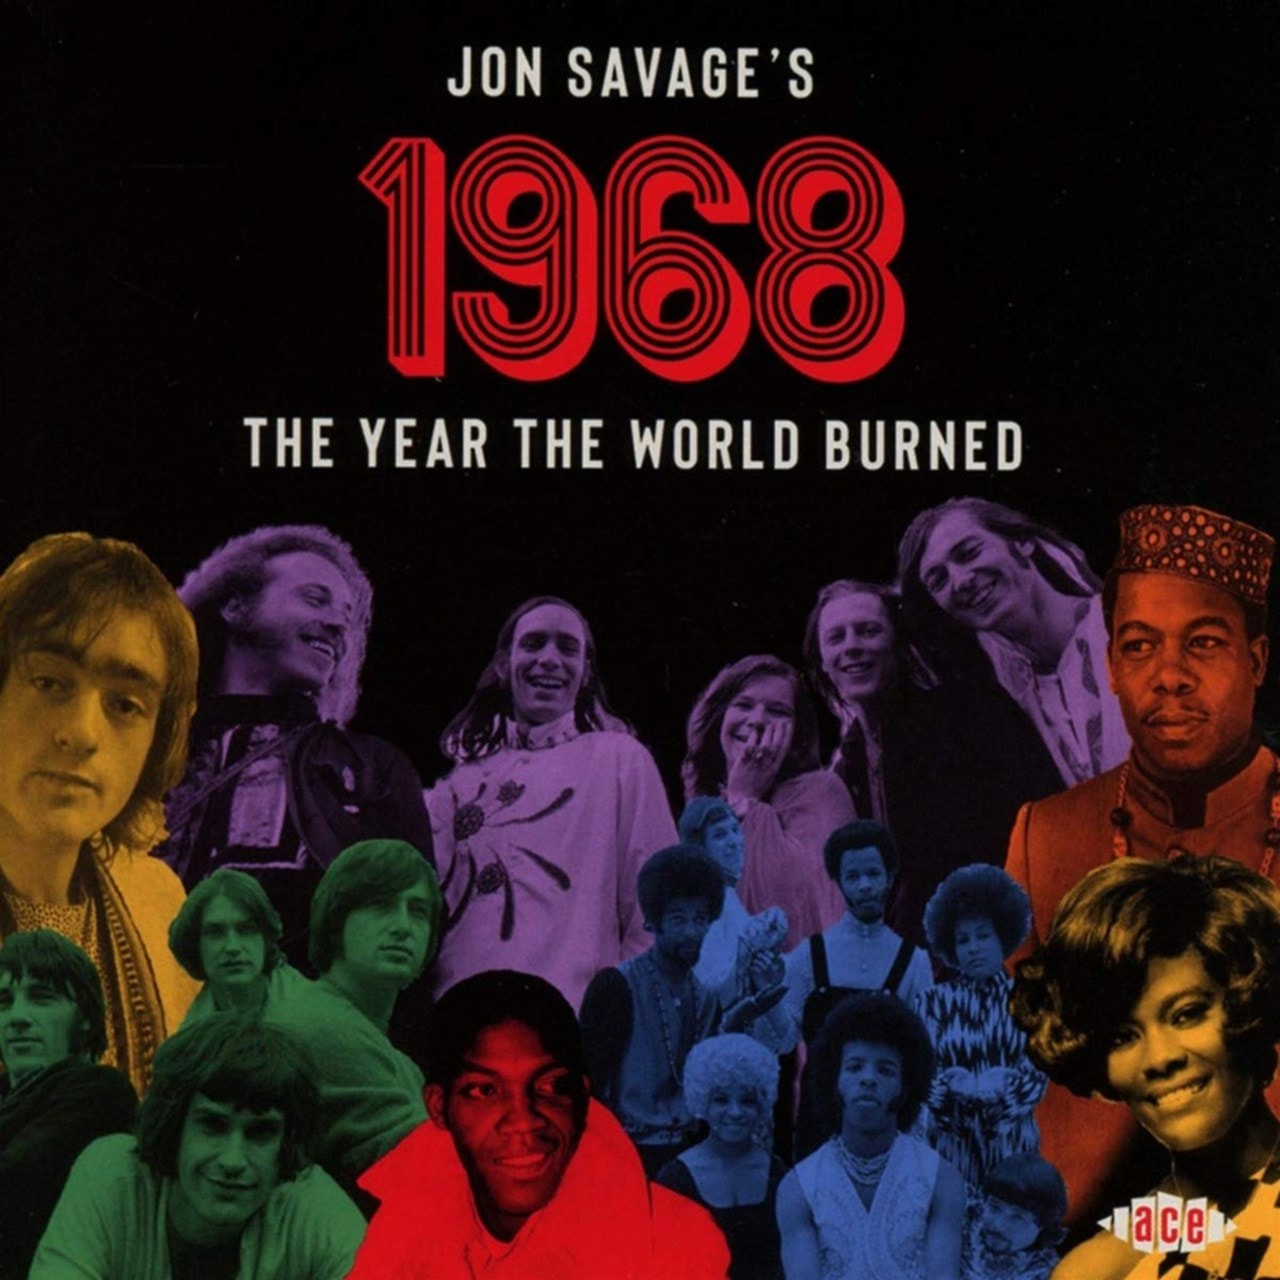 Jon Savage's 1968: The Year the World Burned - 1